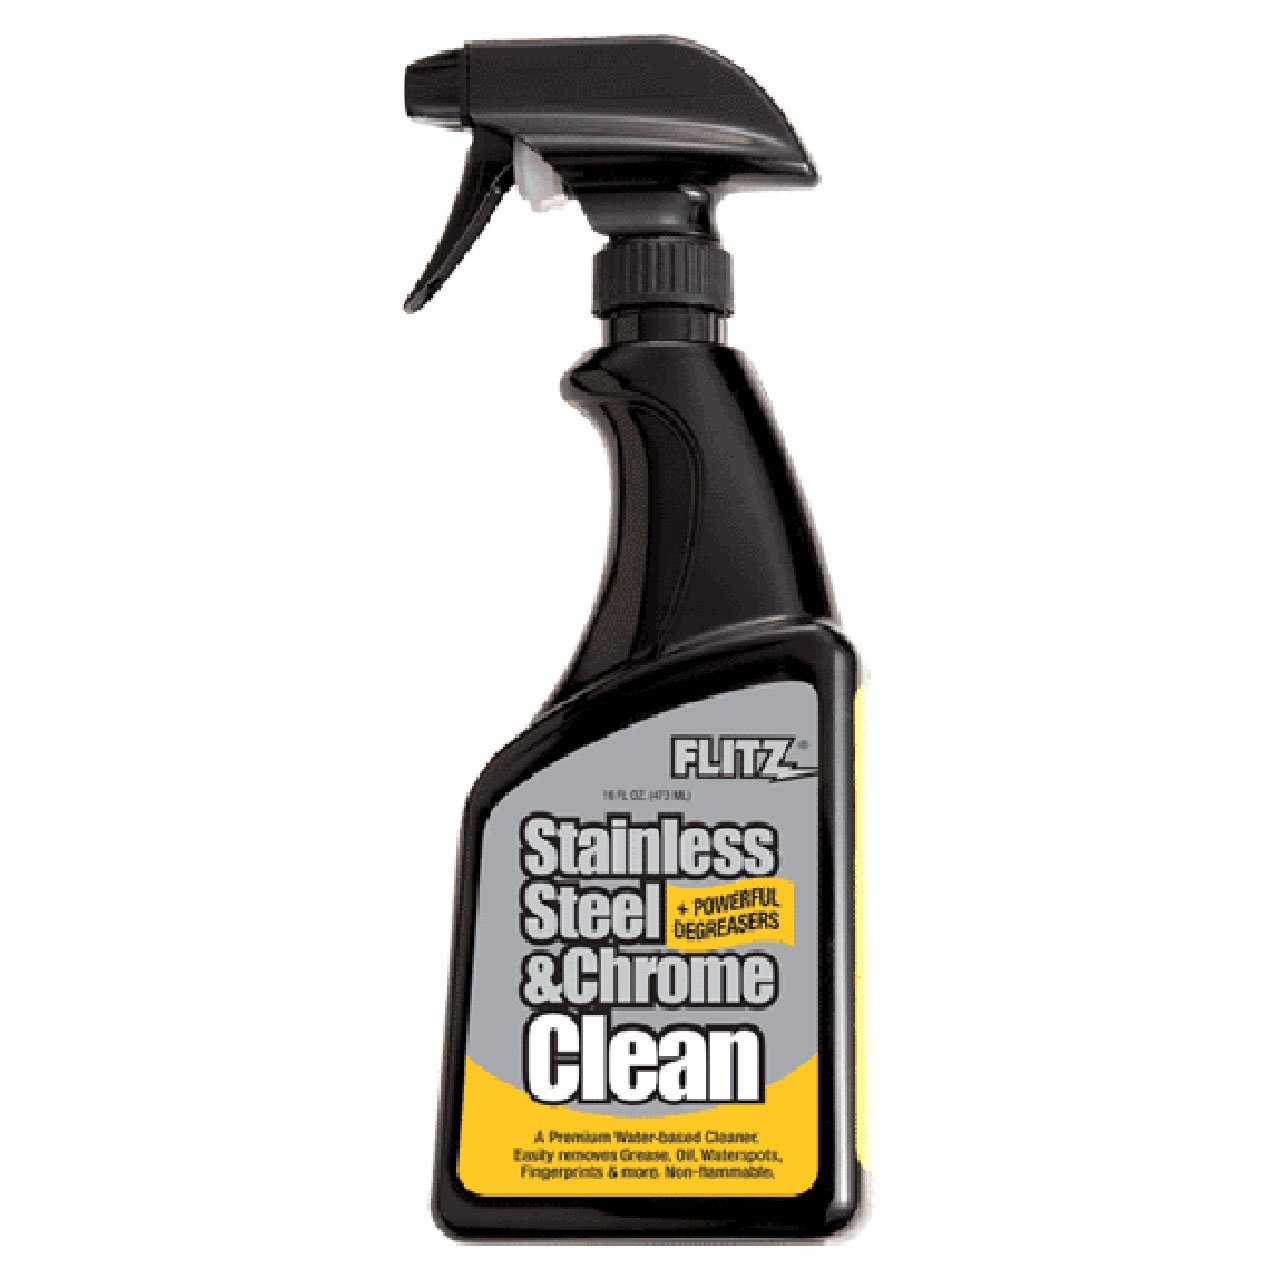 Flitz SP 01506 Stainless Steel and Chrome Cleaner with Degreaser, 16-Ounce, Small